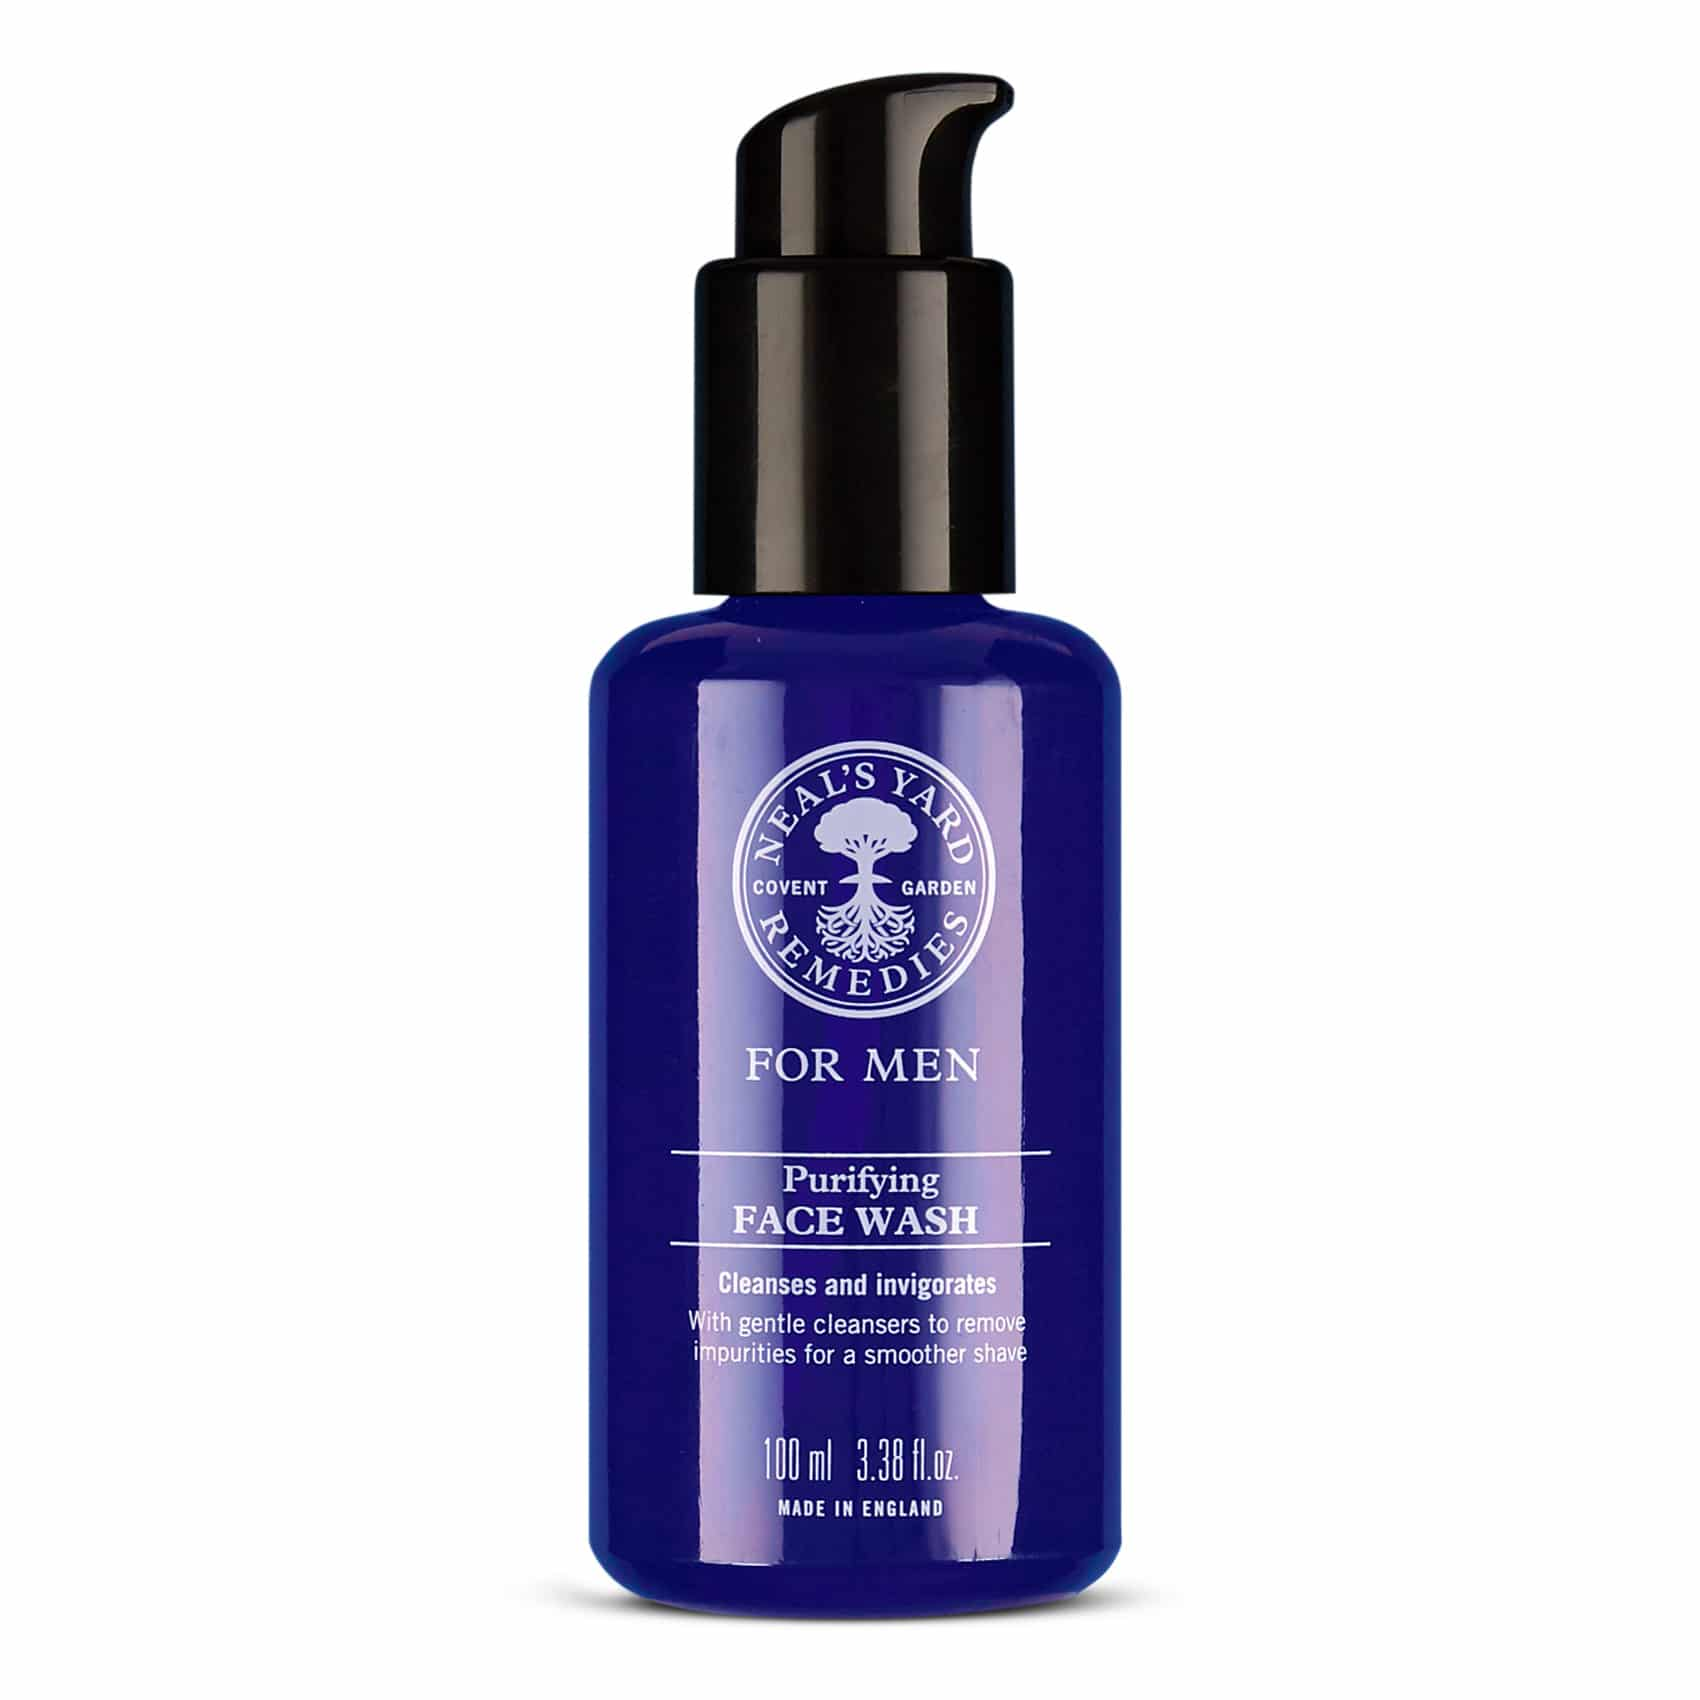 Neal's Yard Remedies For Men Purifying Face Wash 100ml